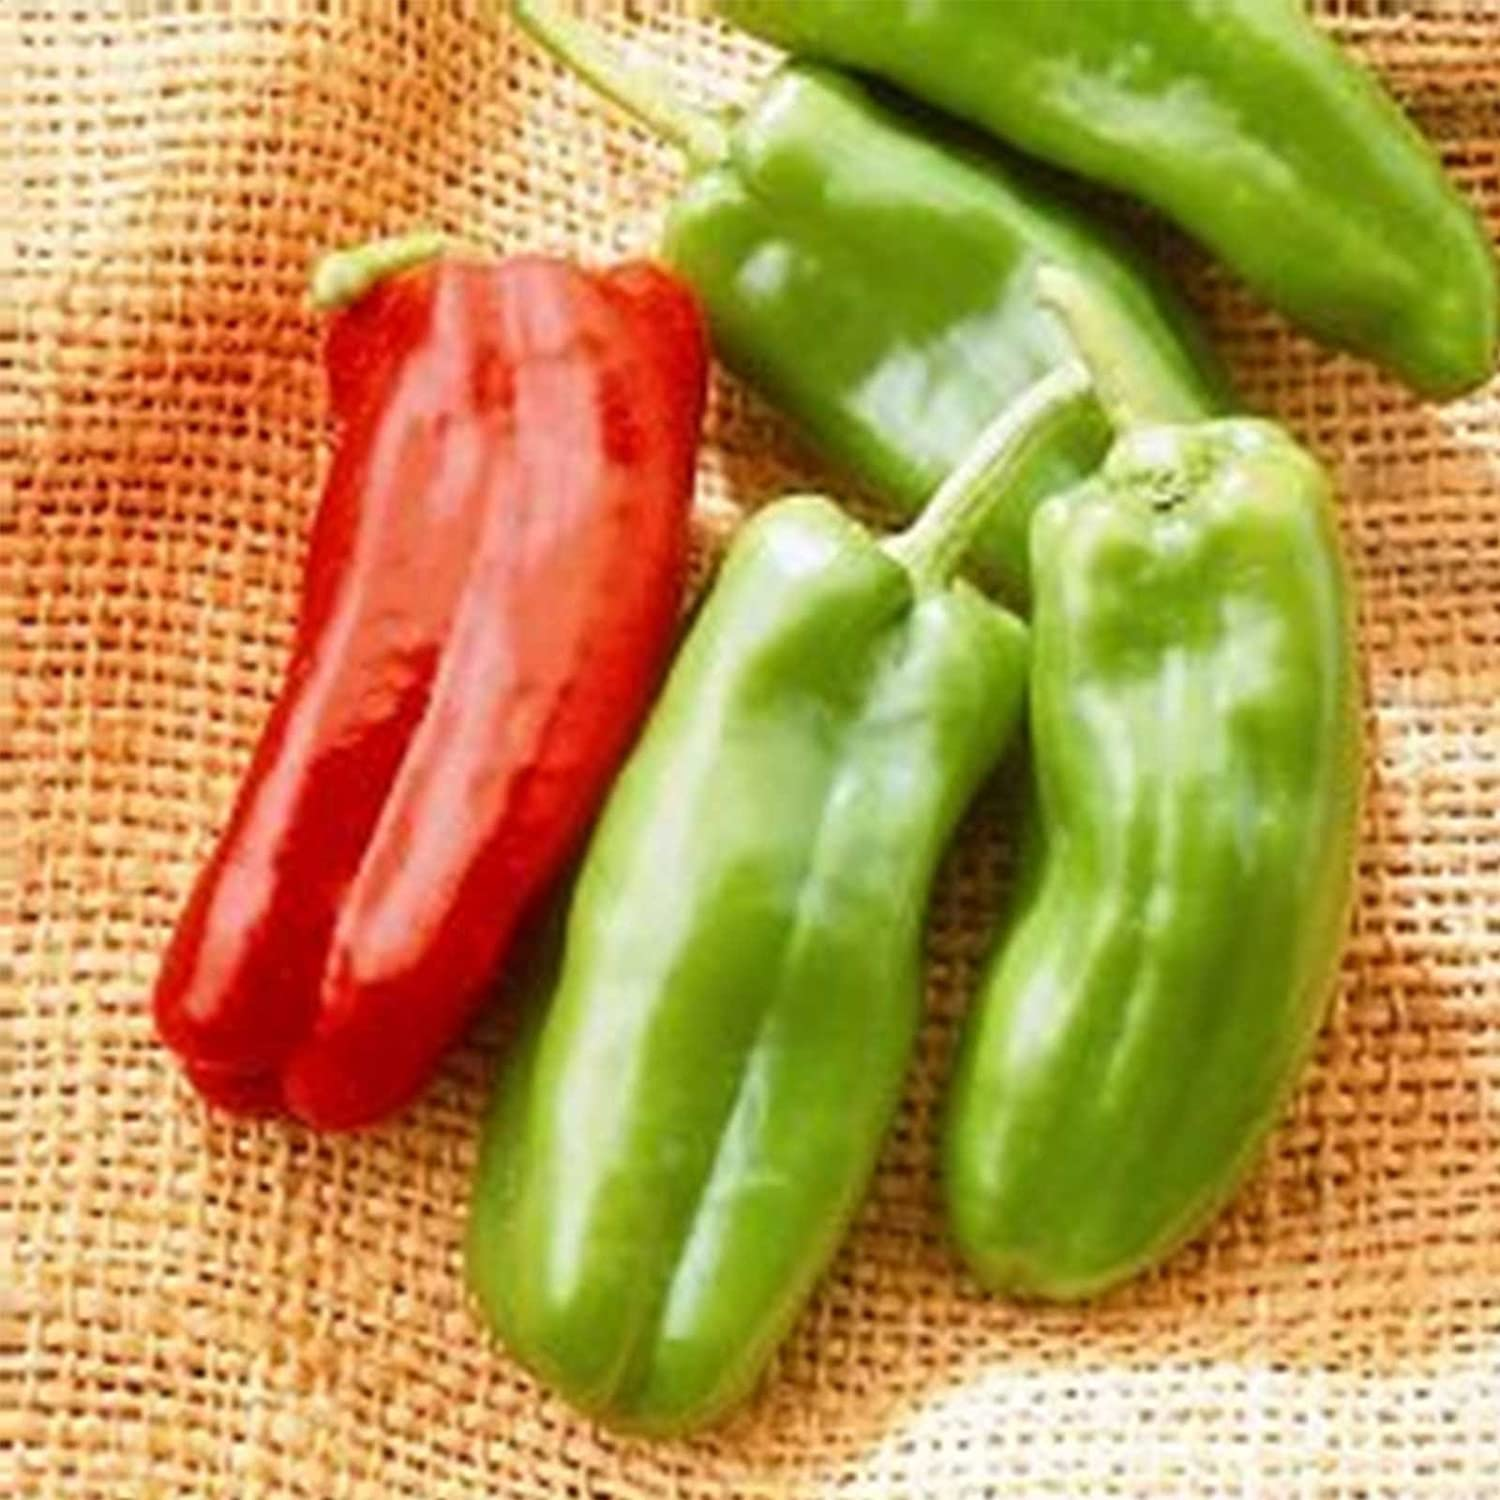 Giant Marconi Hybrid - Sweet Pepper Garden Seeds - 500 Seeds - Non-GMO - Italian Grilling Pepper - AAS Winner -Vegetable Gardening Seed